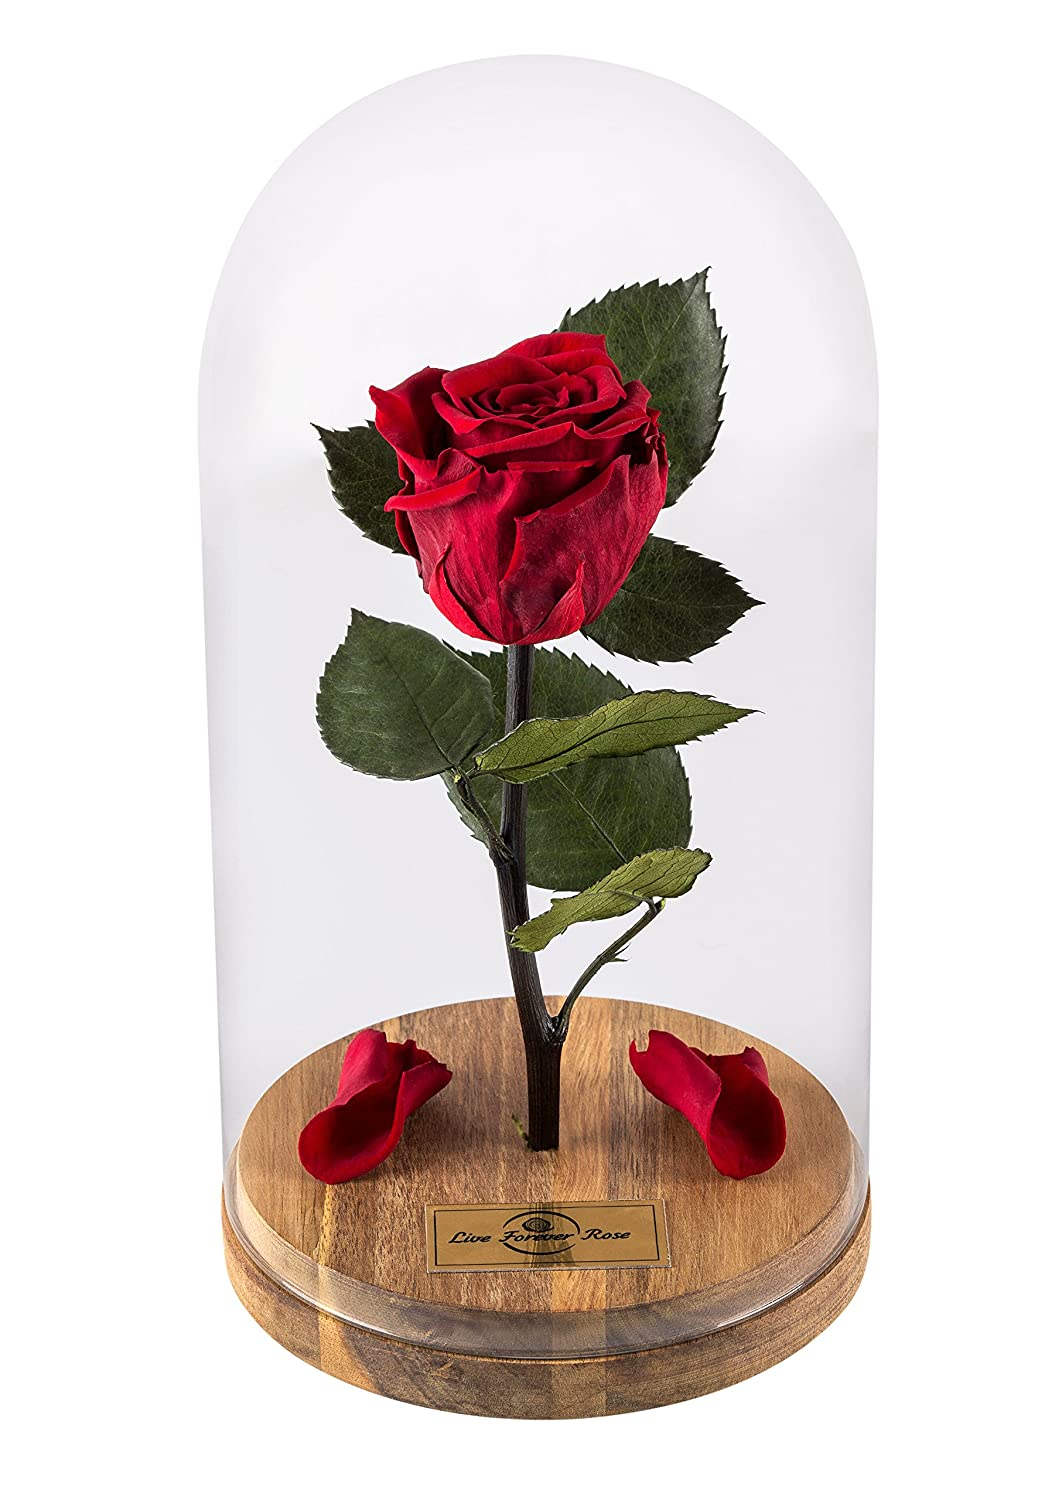 Amazon Beauty And The Beast Rose Live Forever Rose With